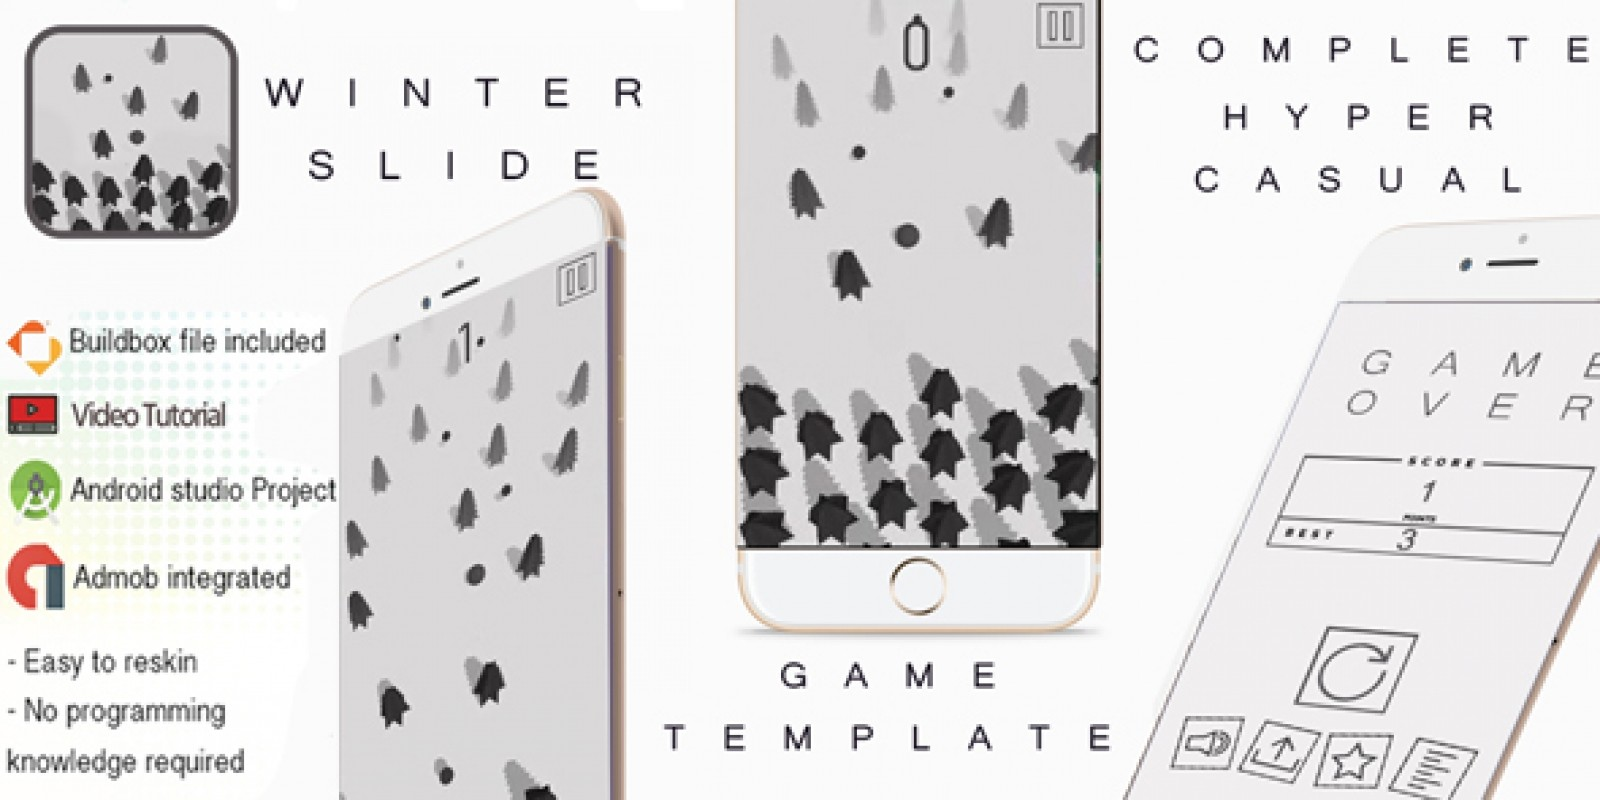 Winter Slide Buildbox 3 Template With Admob